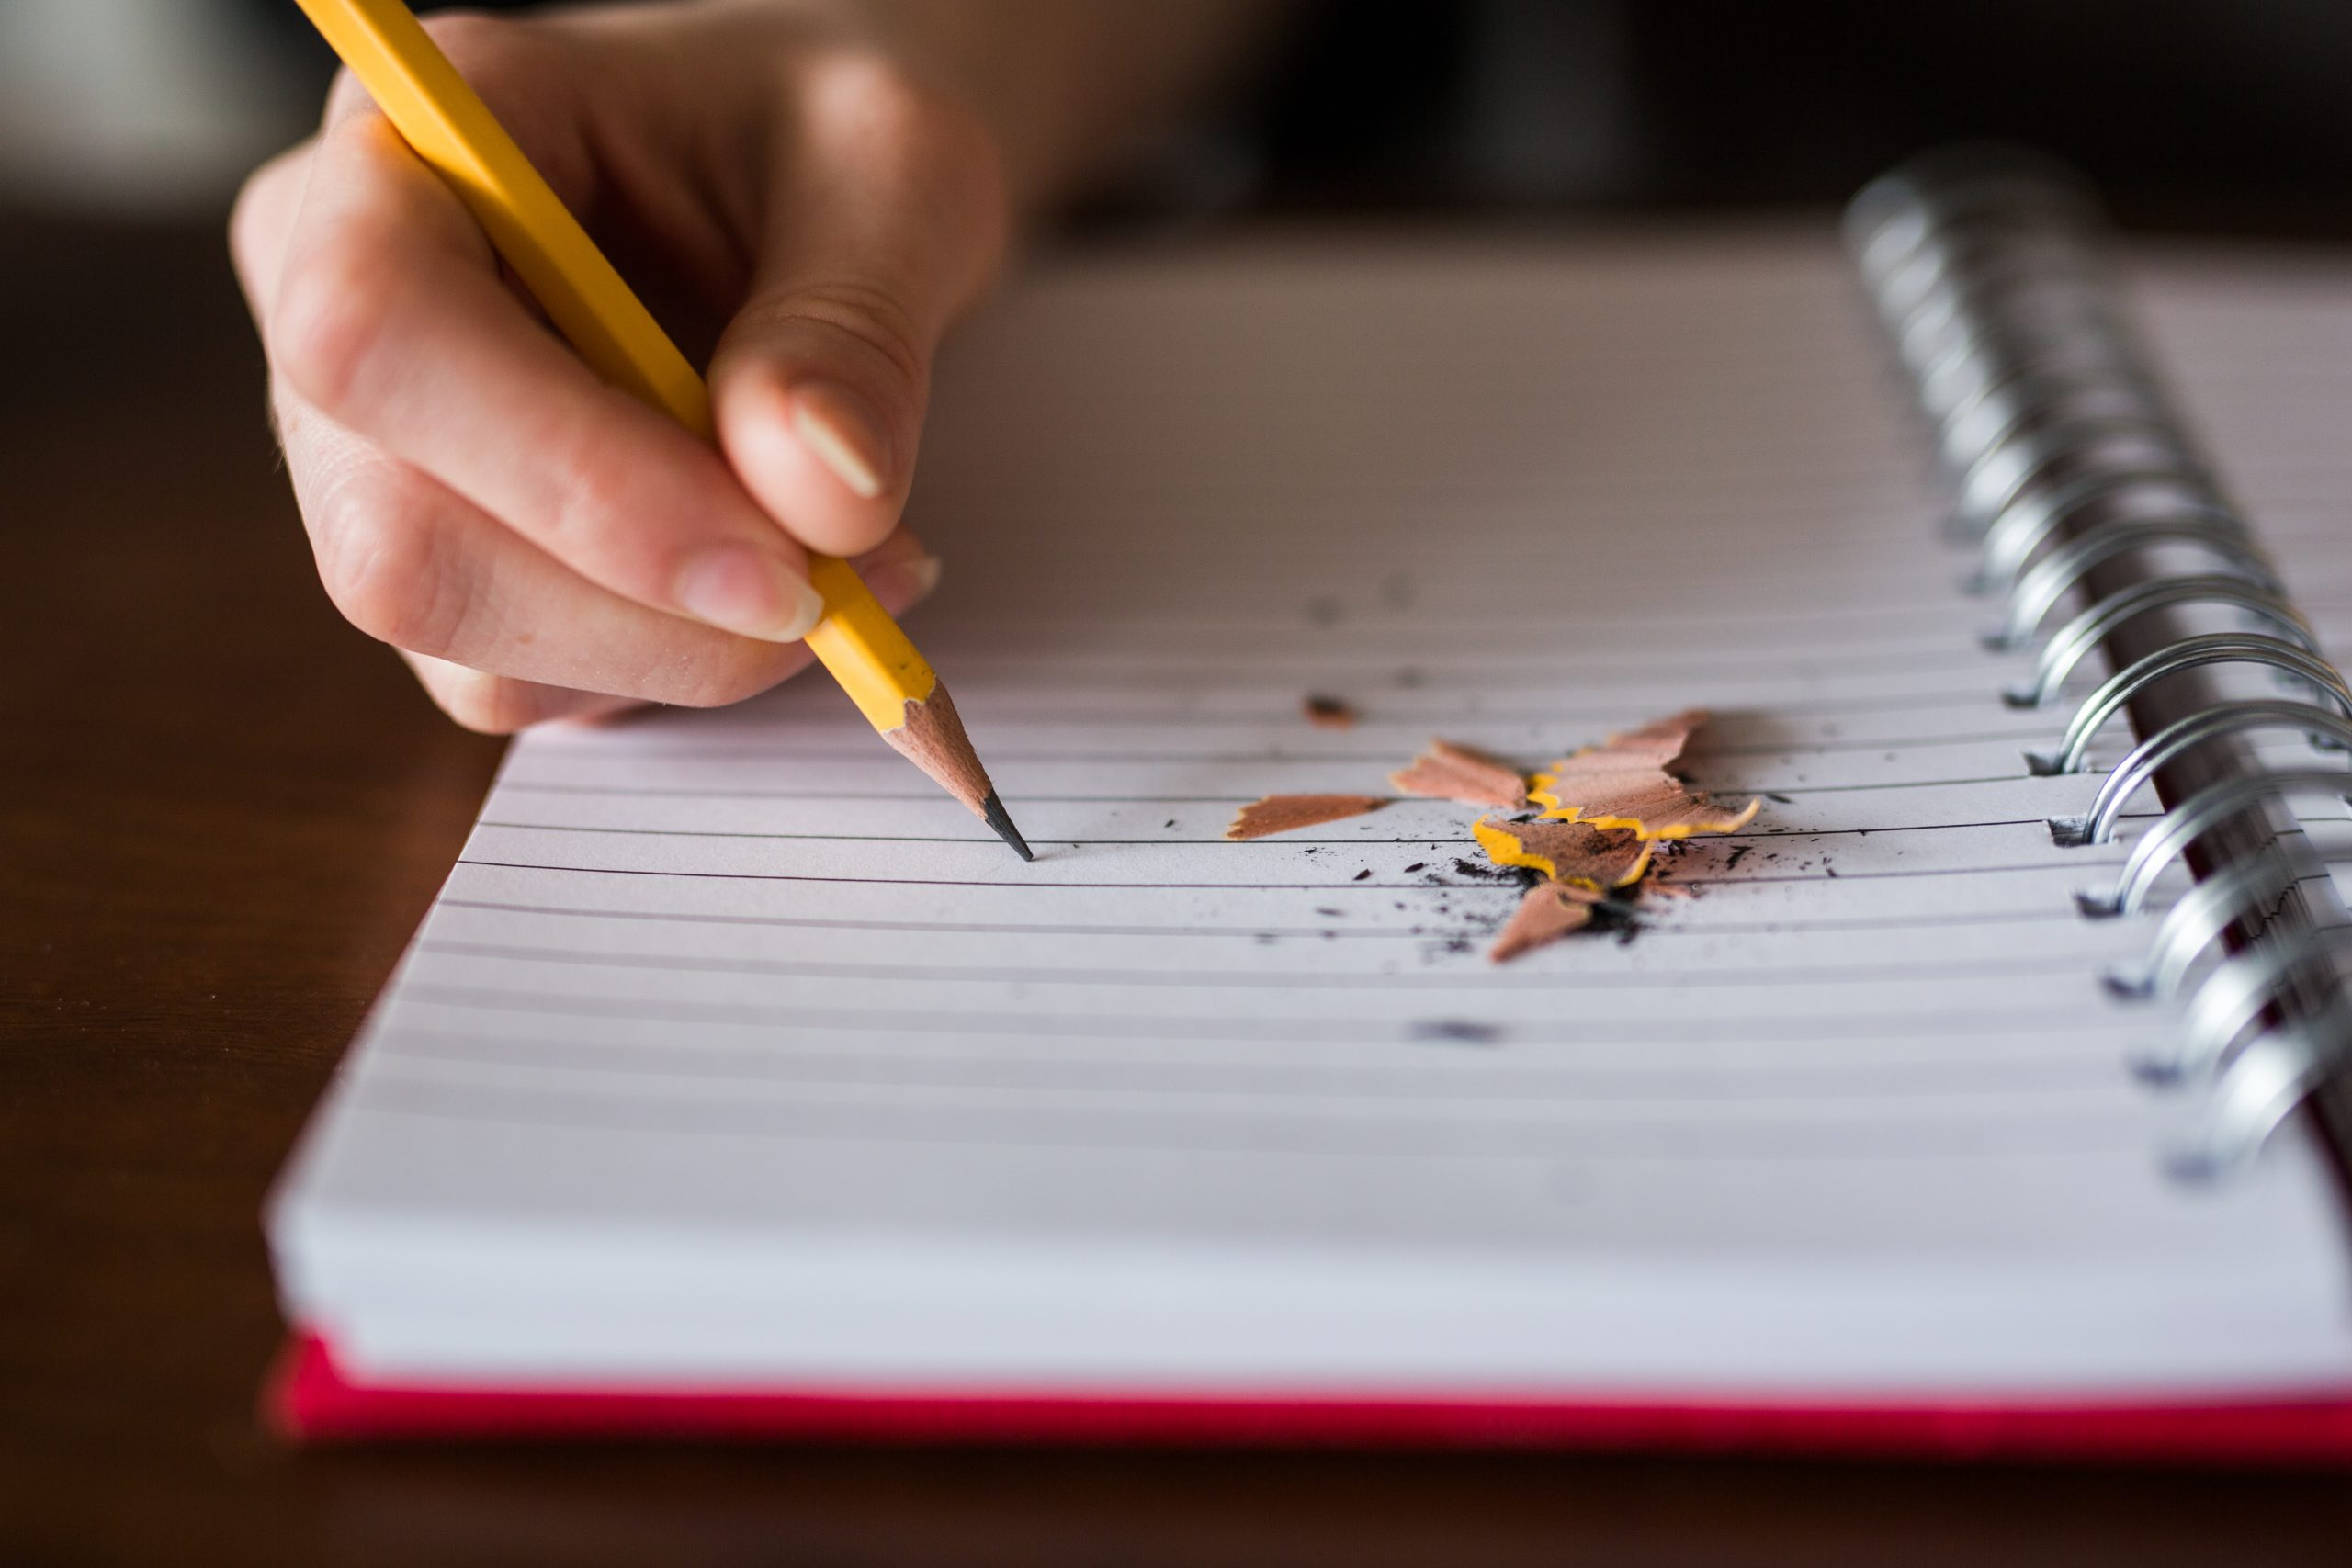 Taking notes with a pencil